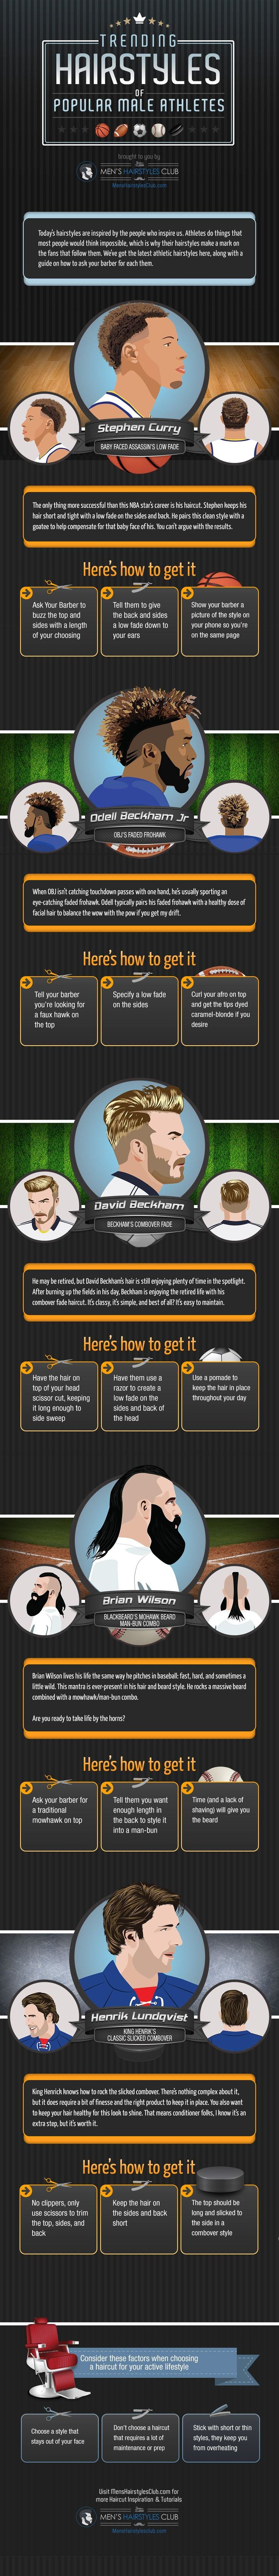 Men Hairstyles Business Infographic